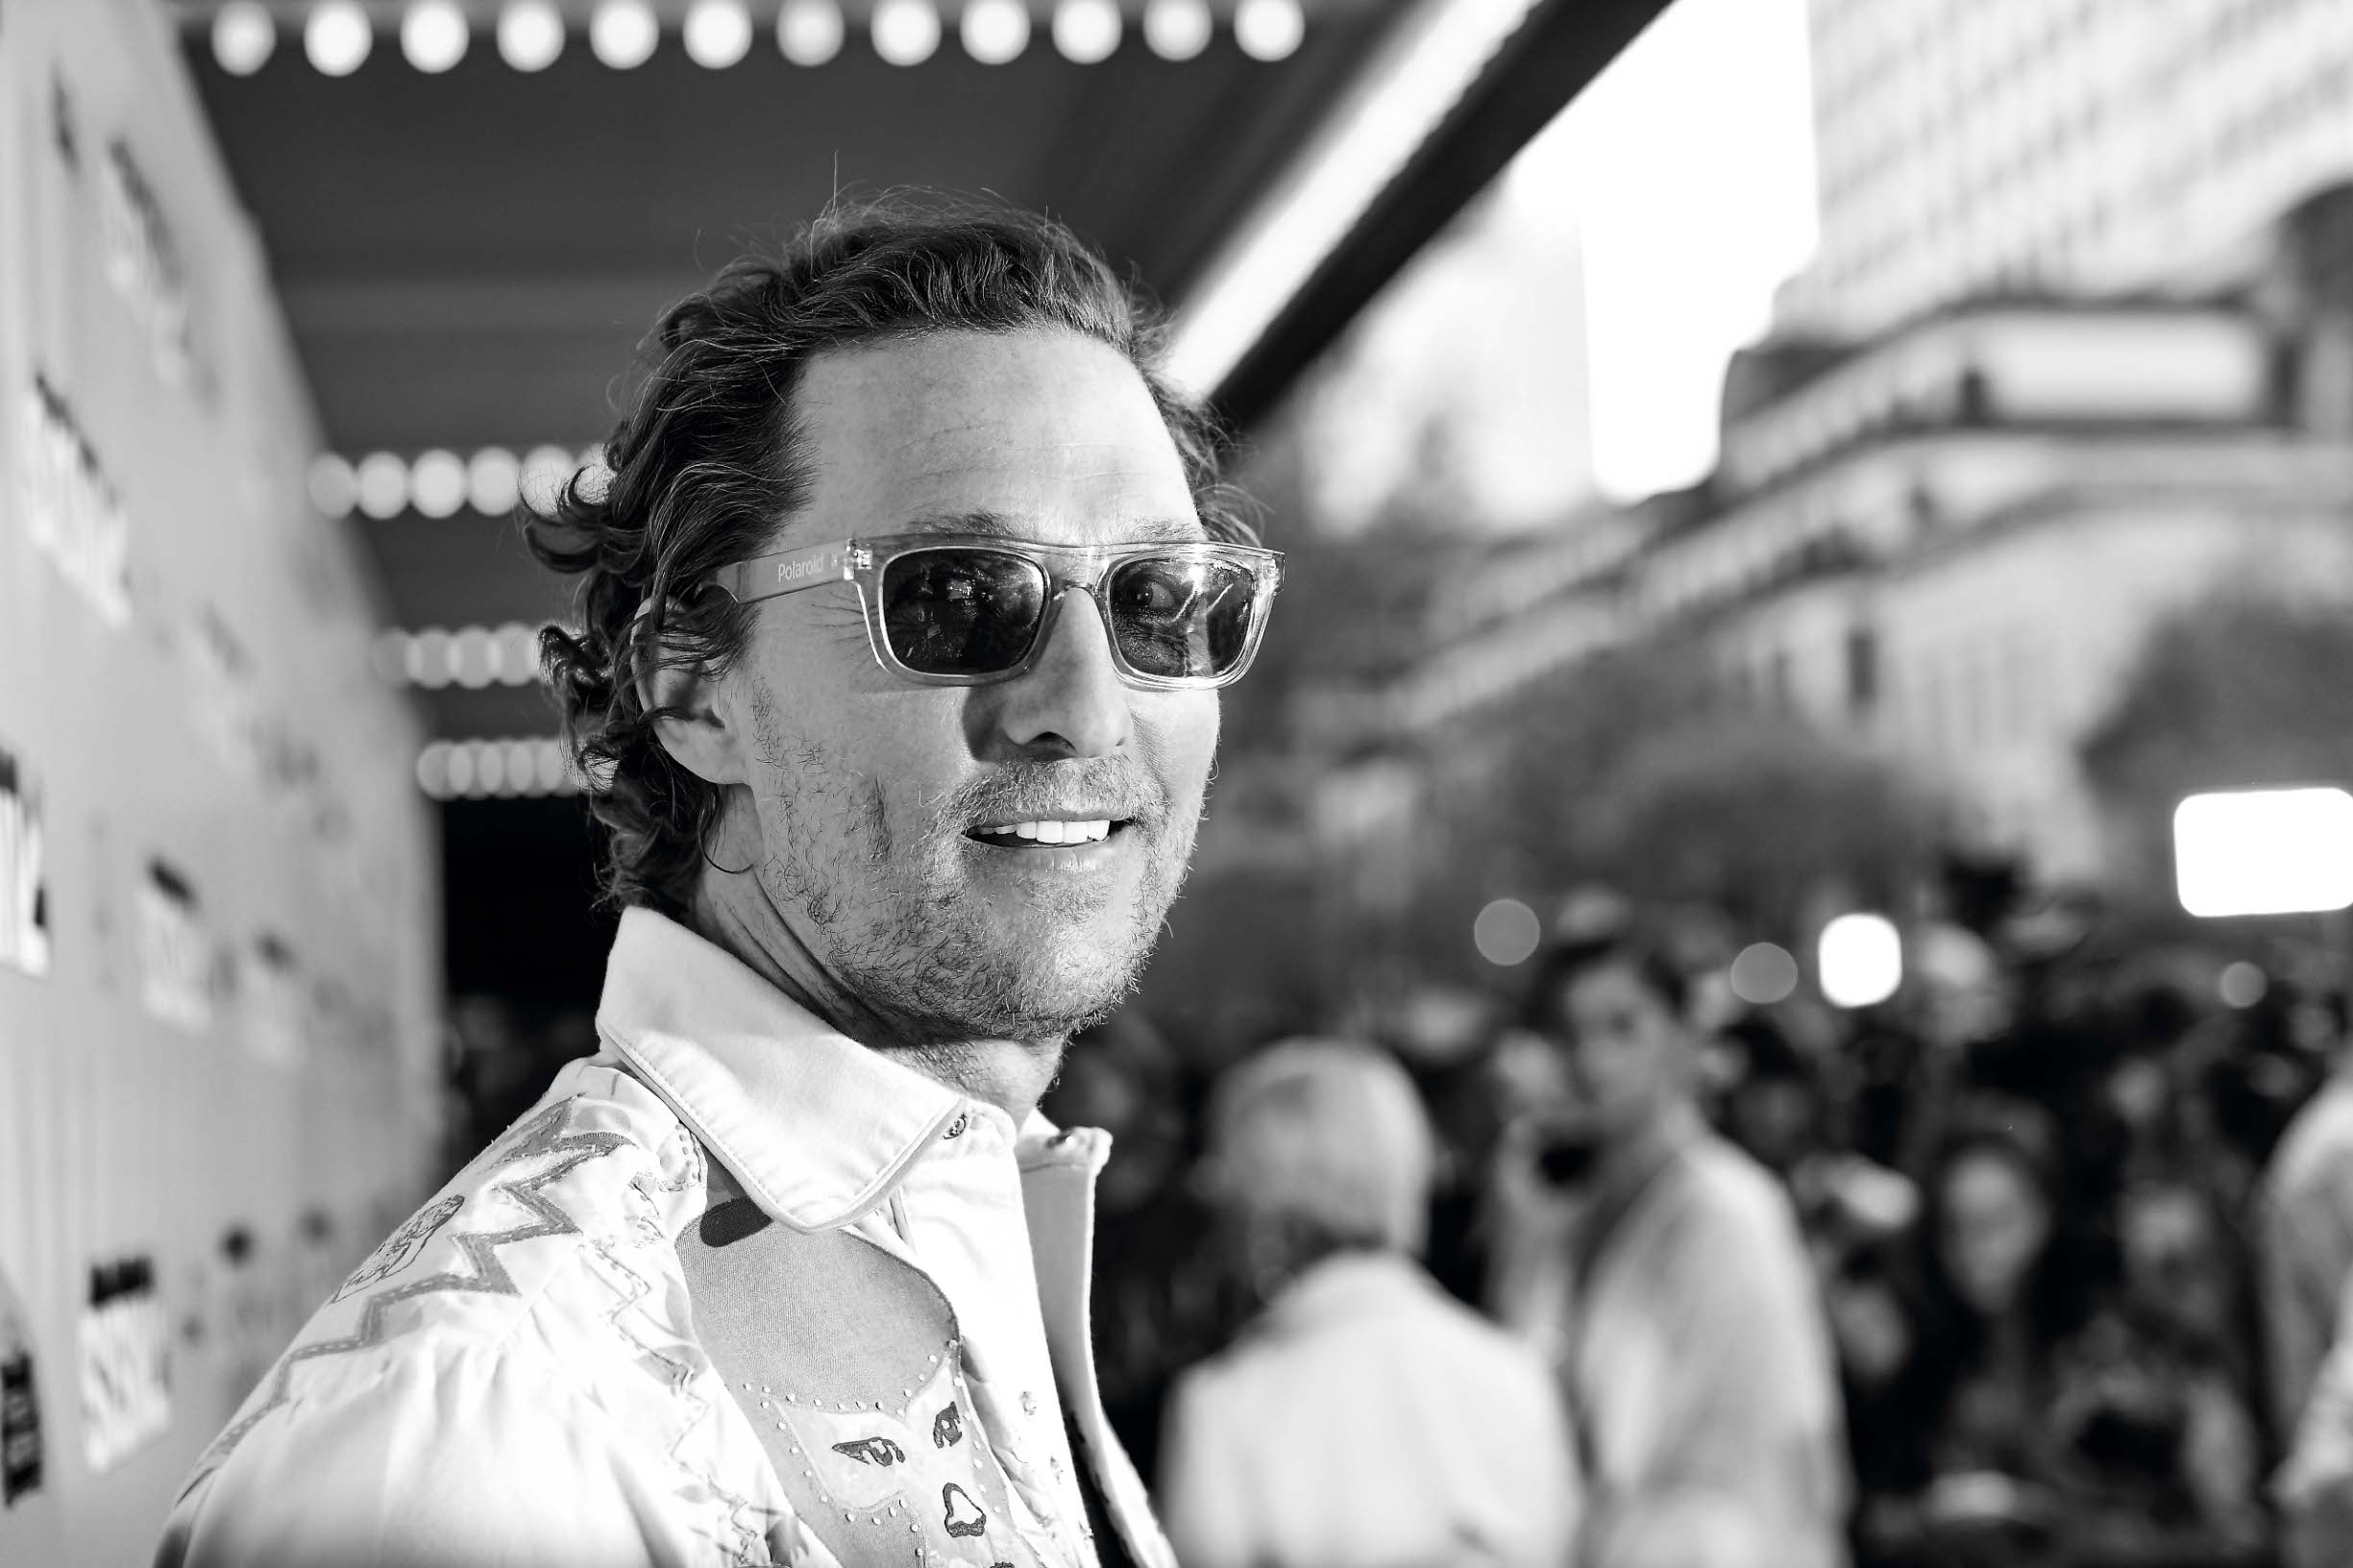 AUSTIN, TEXAS - MARCH 09: (EDITORS NOTE: Image has been converted to black and white) Matthew McConaughey attends the